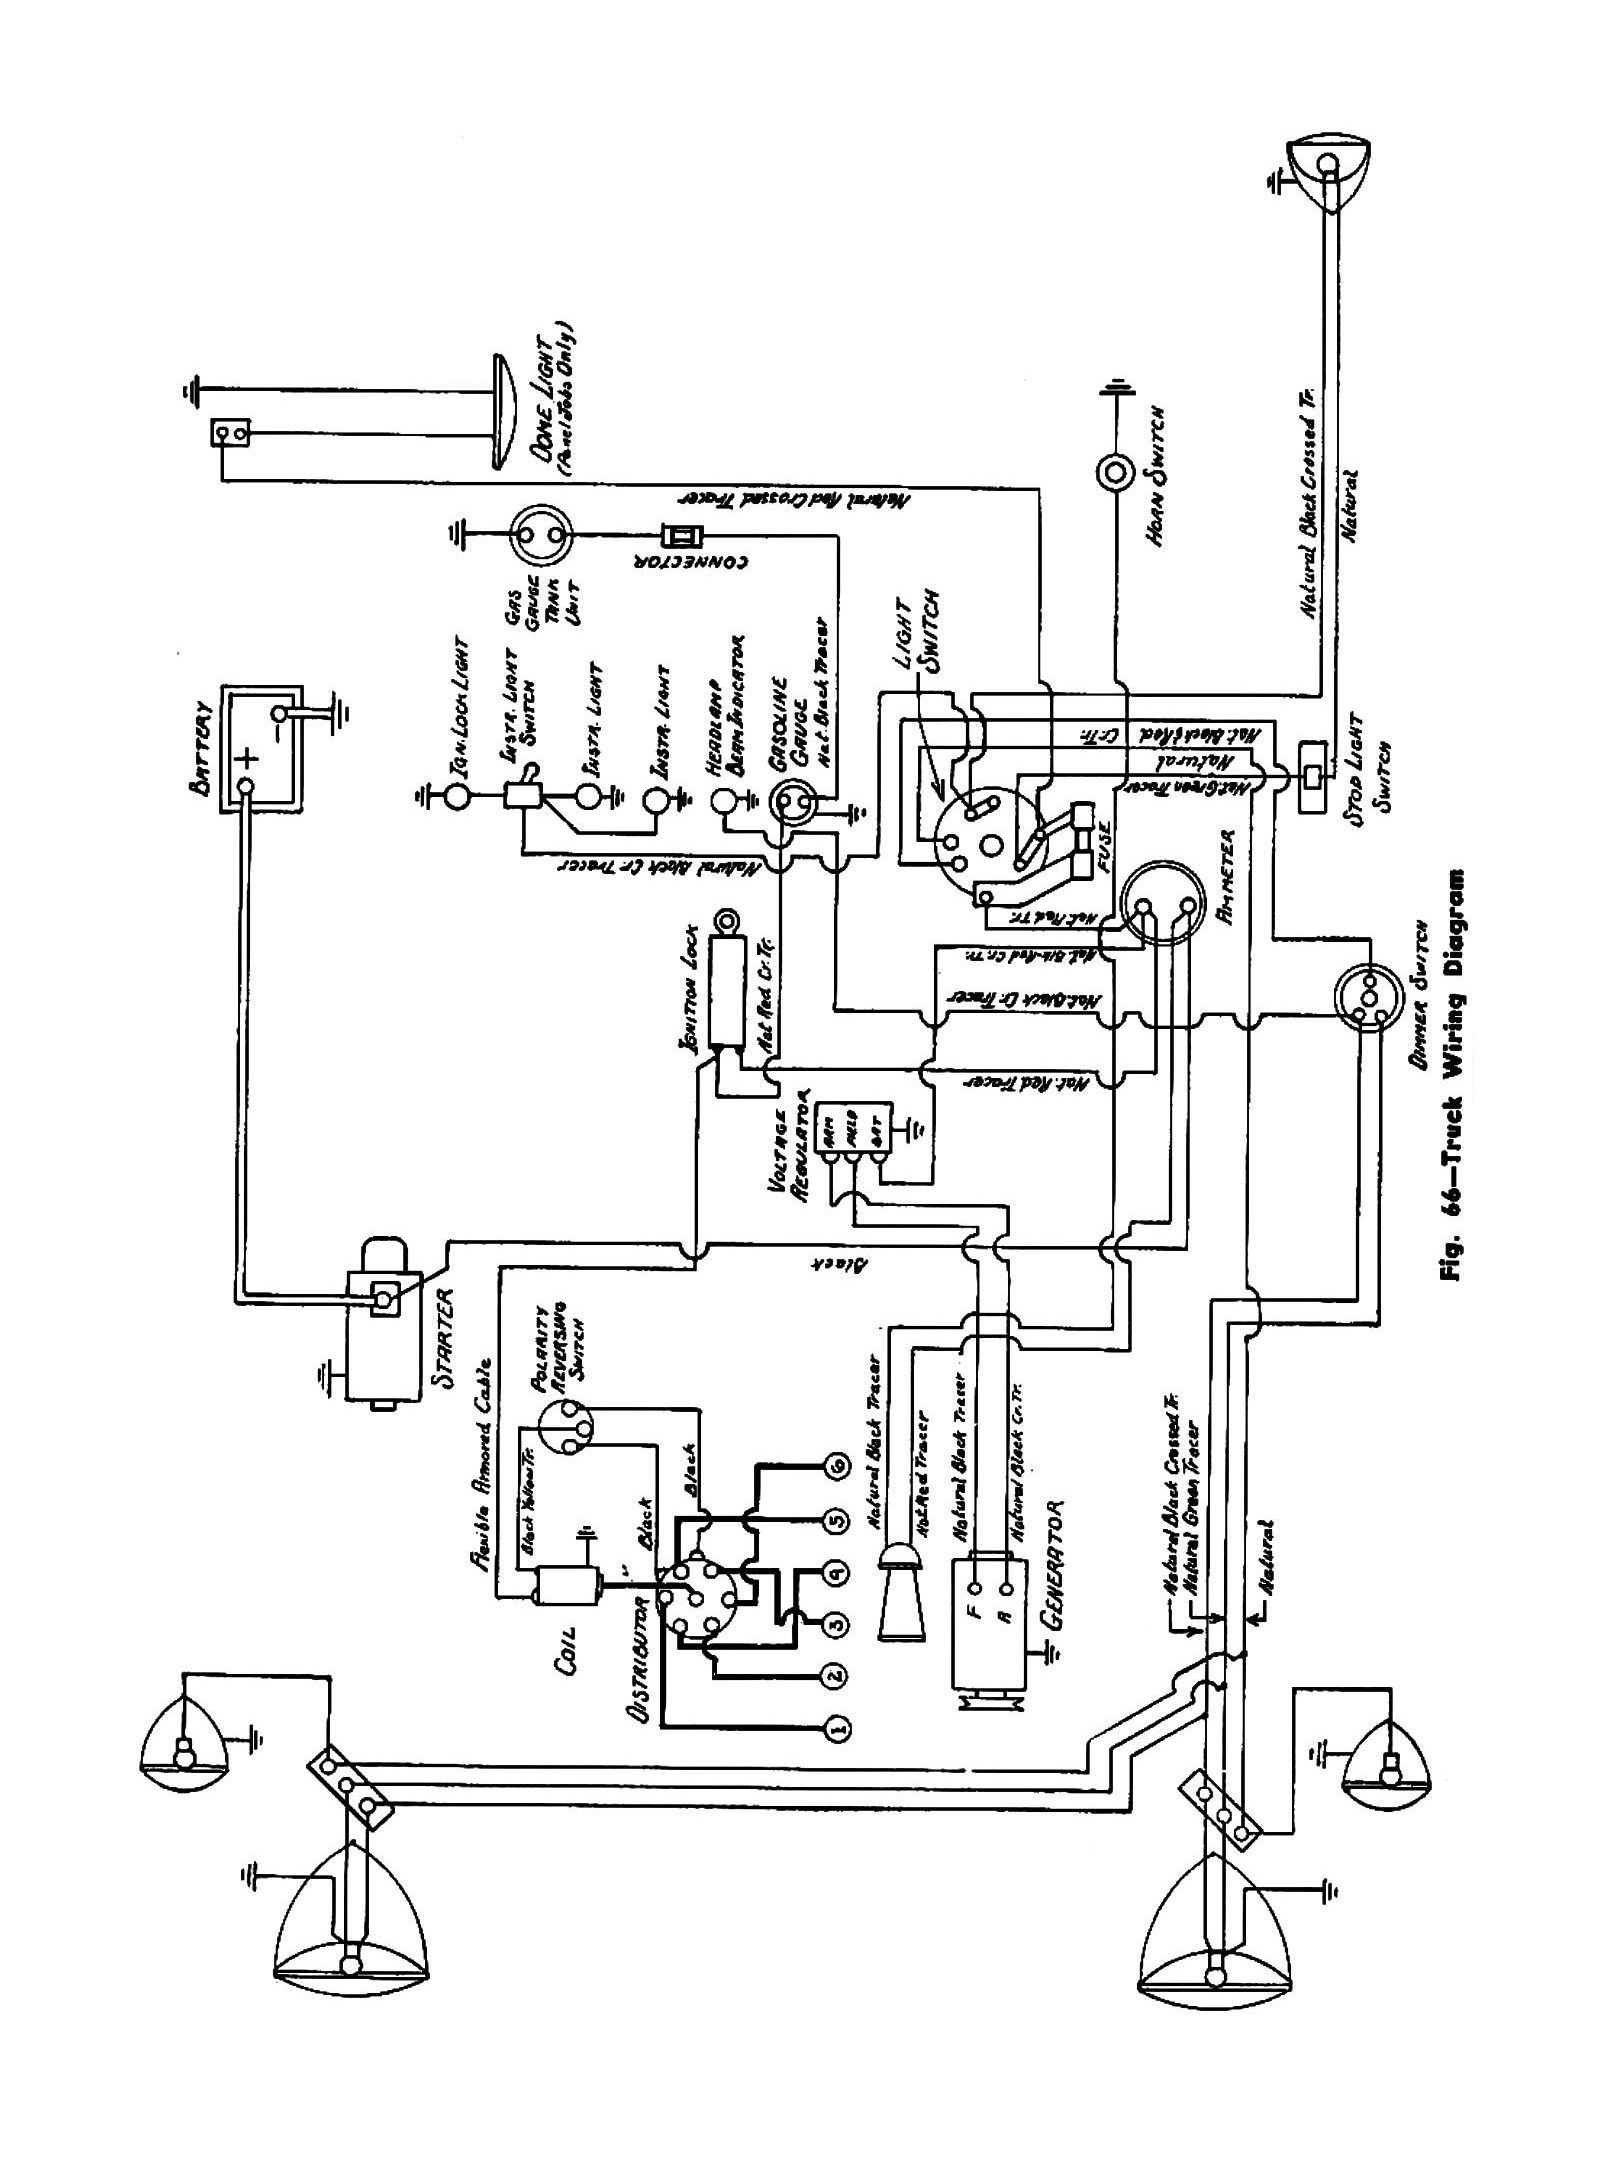 hight resolution of wiringdiagramrs485wiringdiagramrs485wiringdiagramdb9918x1010 old phone box wiring diagram free download wiring diagram schematic